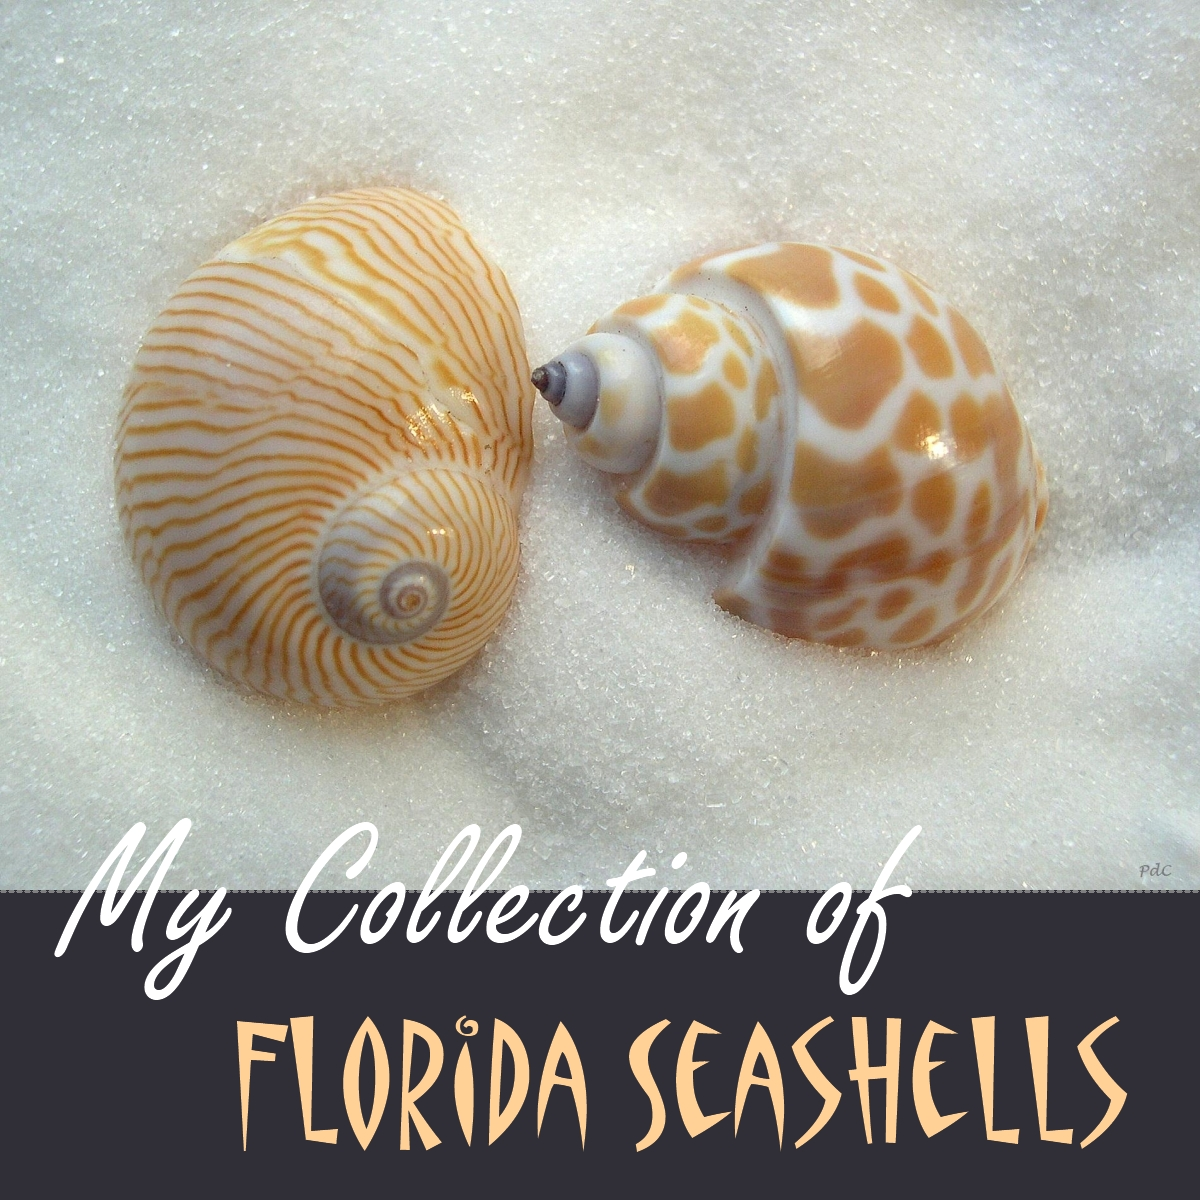 Florida Beaches, Travel And Shell